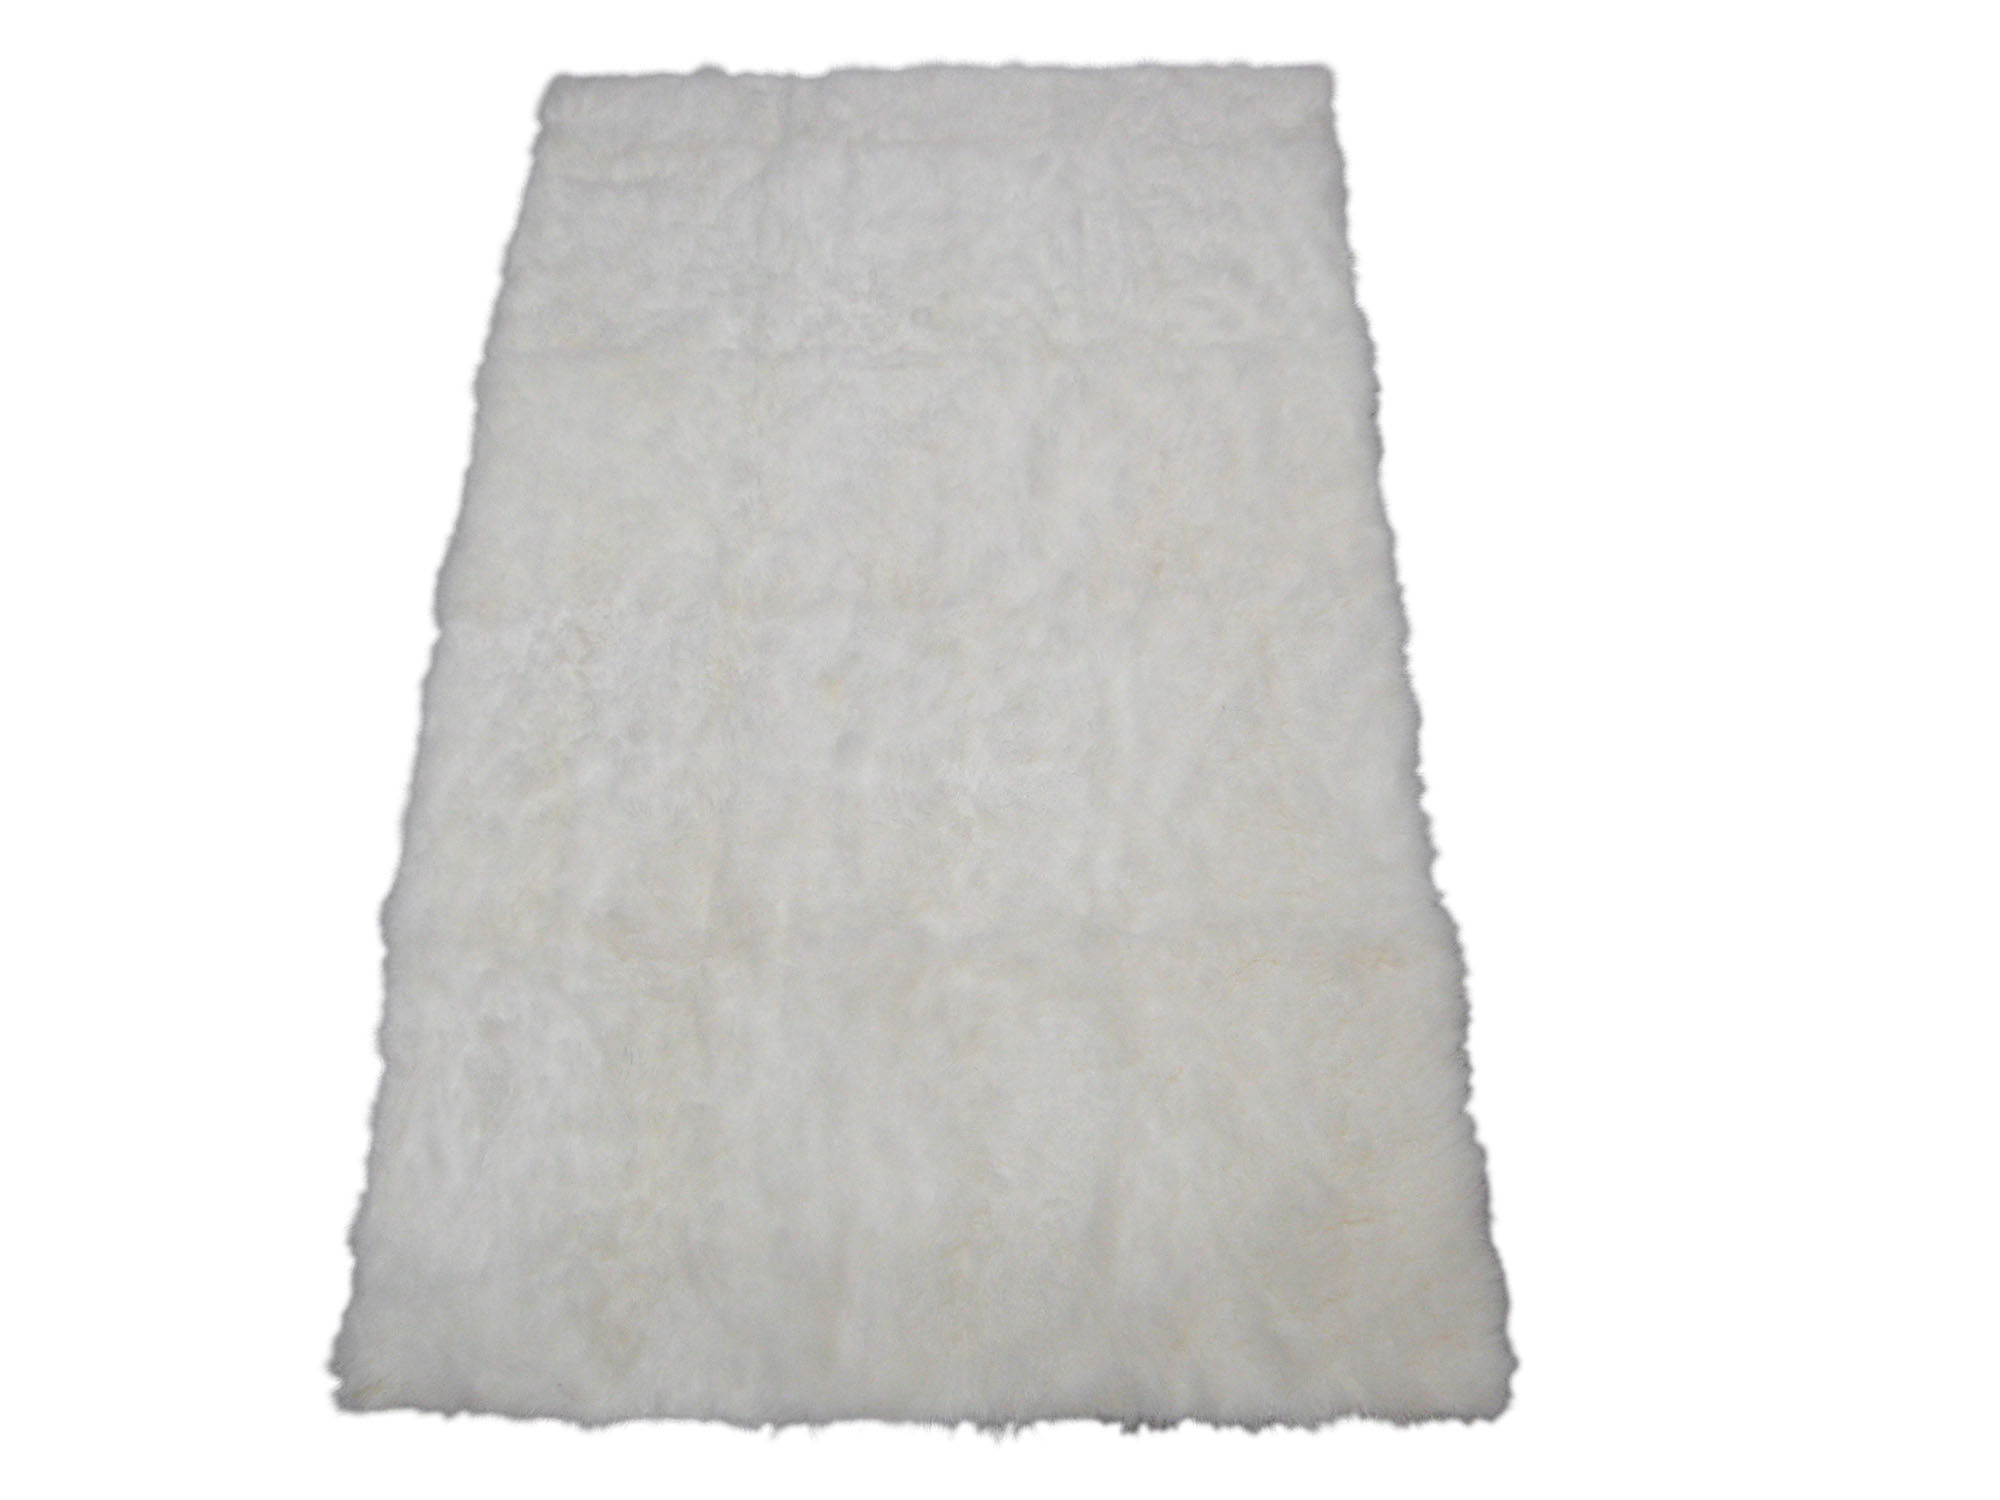 Cashmere Goat Rug: Natural White (Brightened): Gallery Item